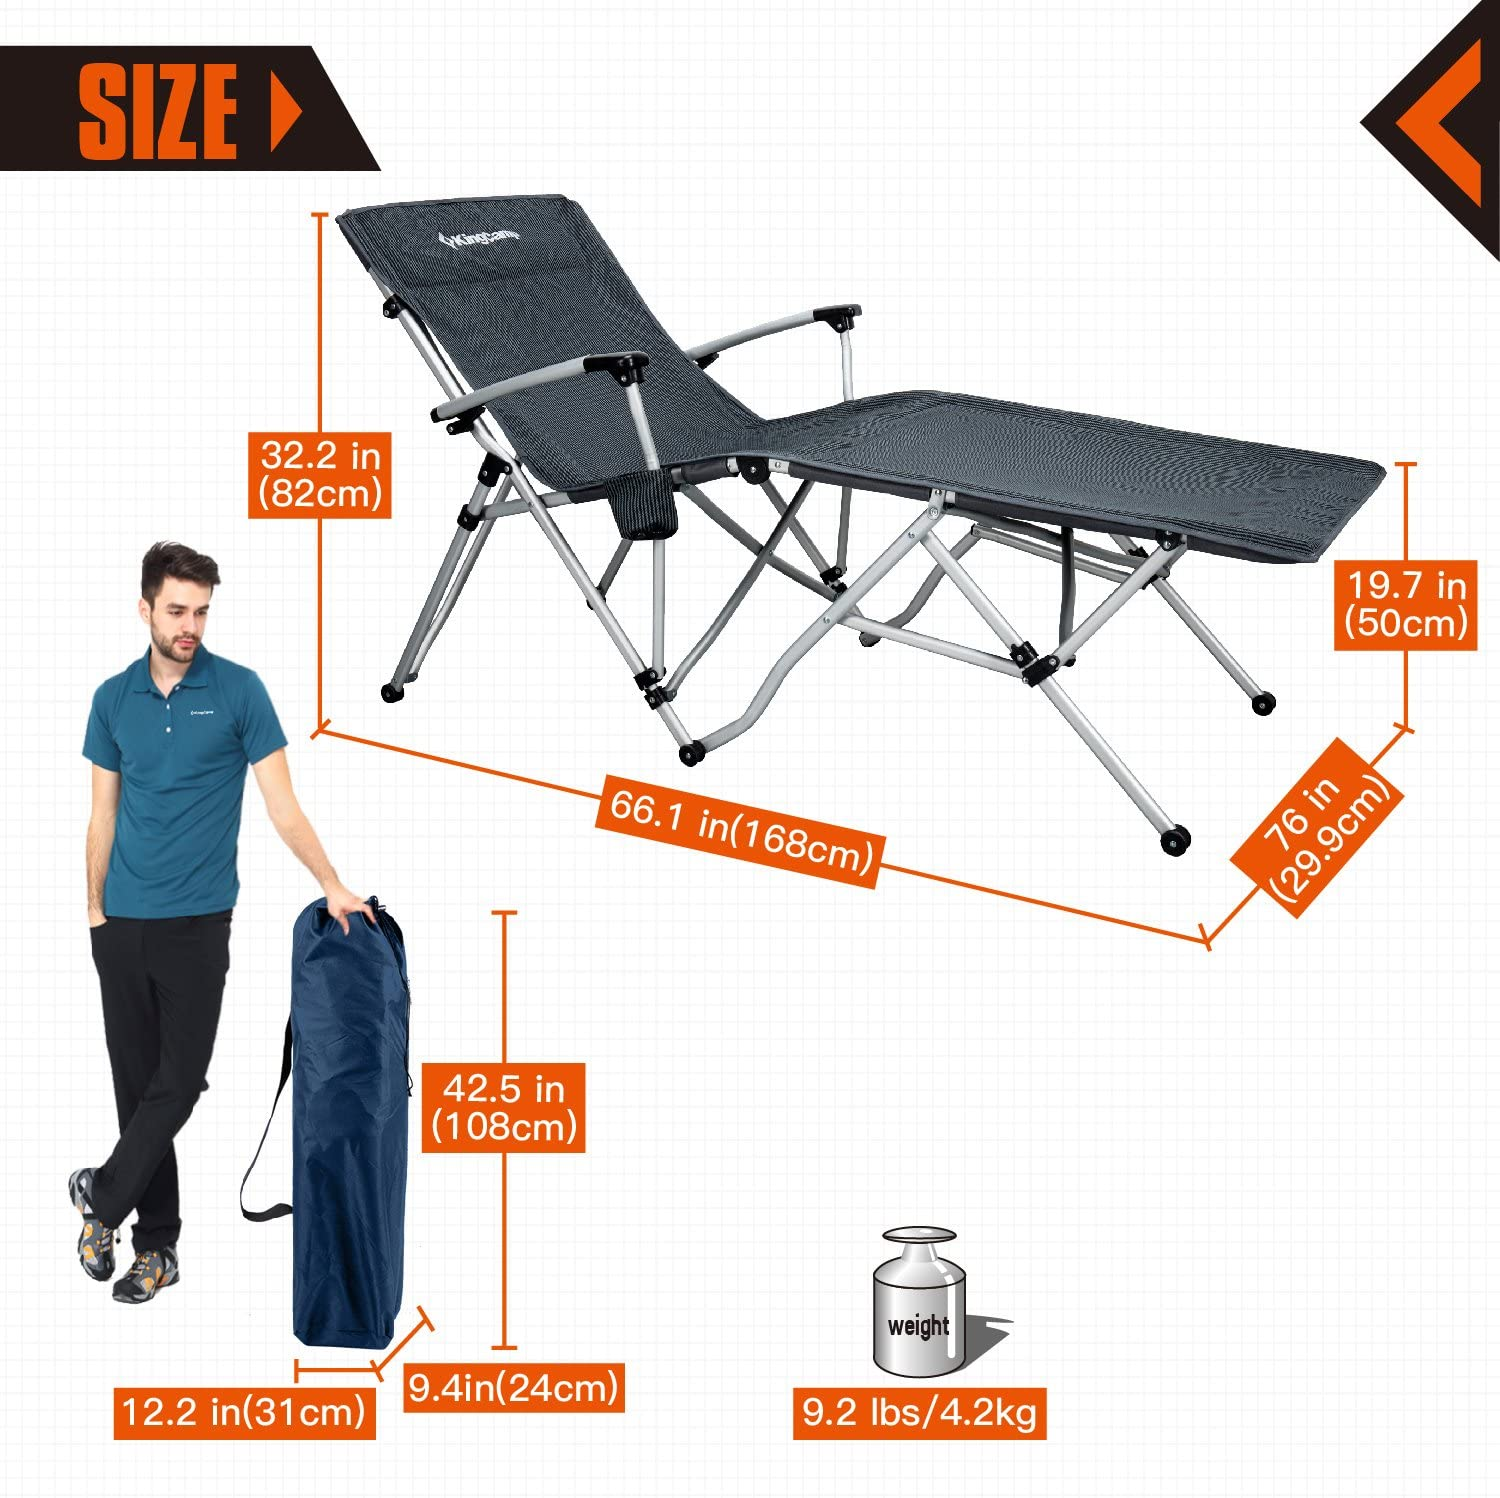 KingCamp Camping Chair Oversized XL Folding Patio Lounge Chaise Bed with Cup Holder Optimal-Angle Armrest Lightweight Portable Supports 300lbs for Camping, Carry Bag Included